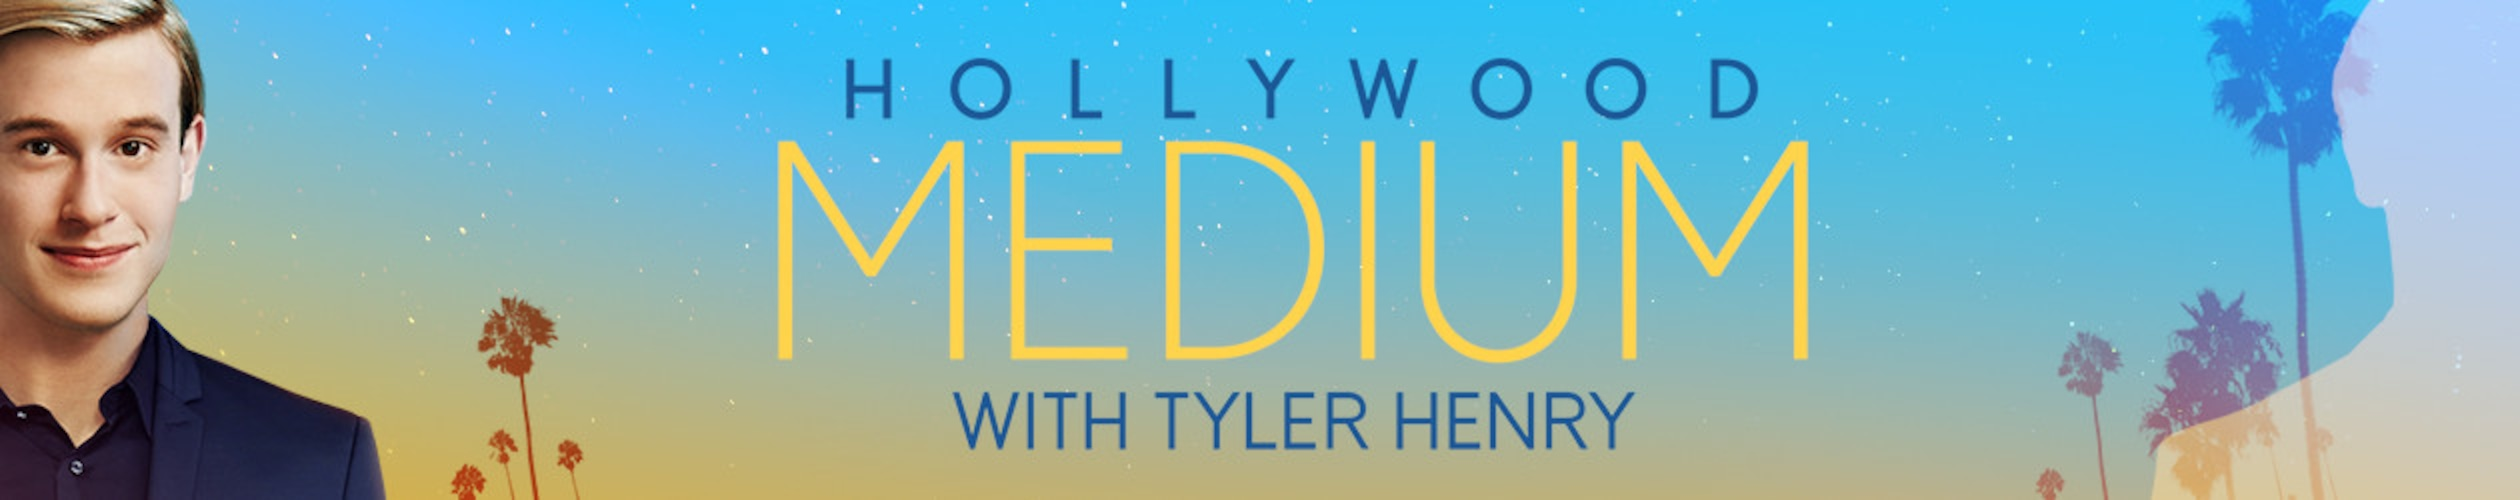 Hollywood Medium Tune-In Banner